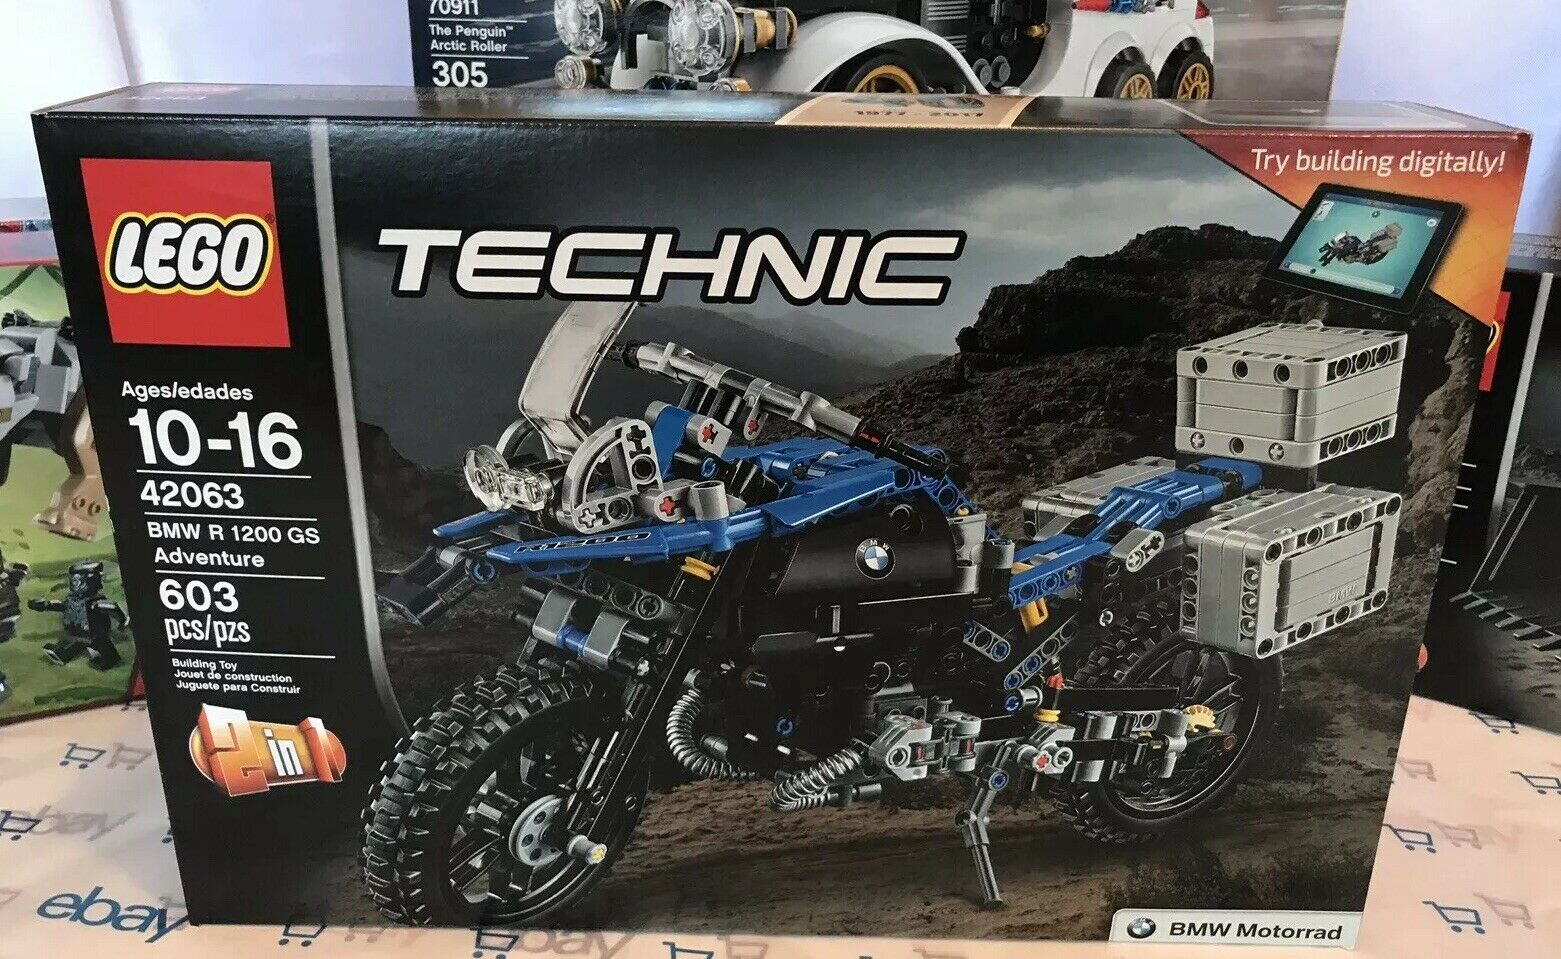 LEGO TECHNIC  42063 BMW R 1200 GS Adventure nouveau In Box Sealed Collector  top marque